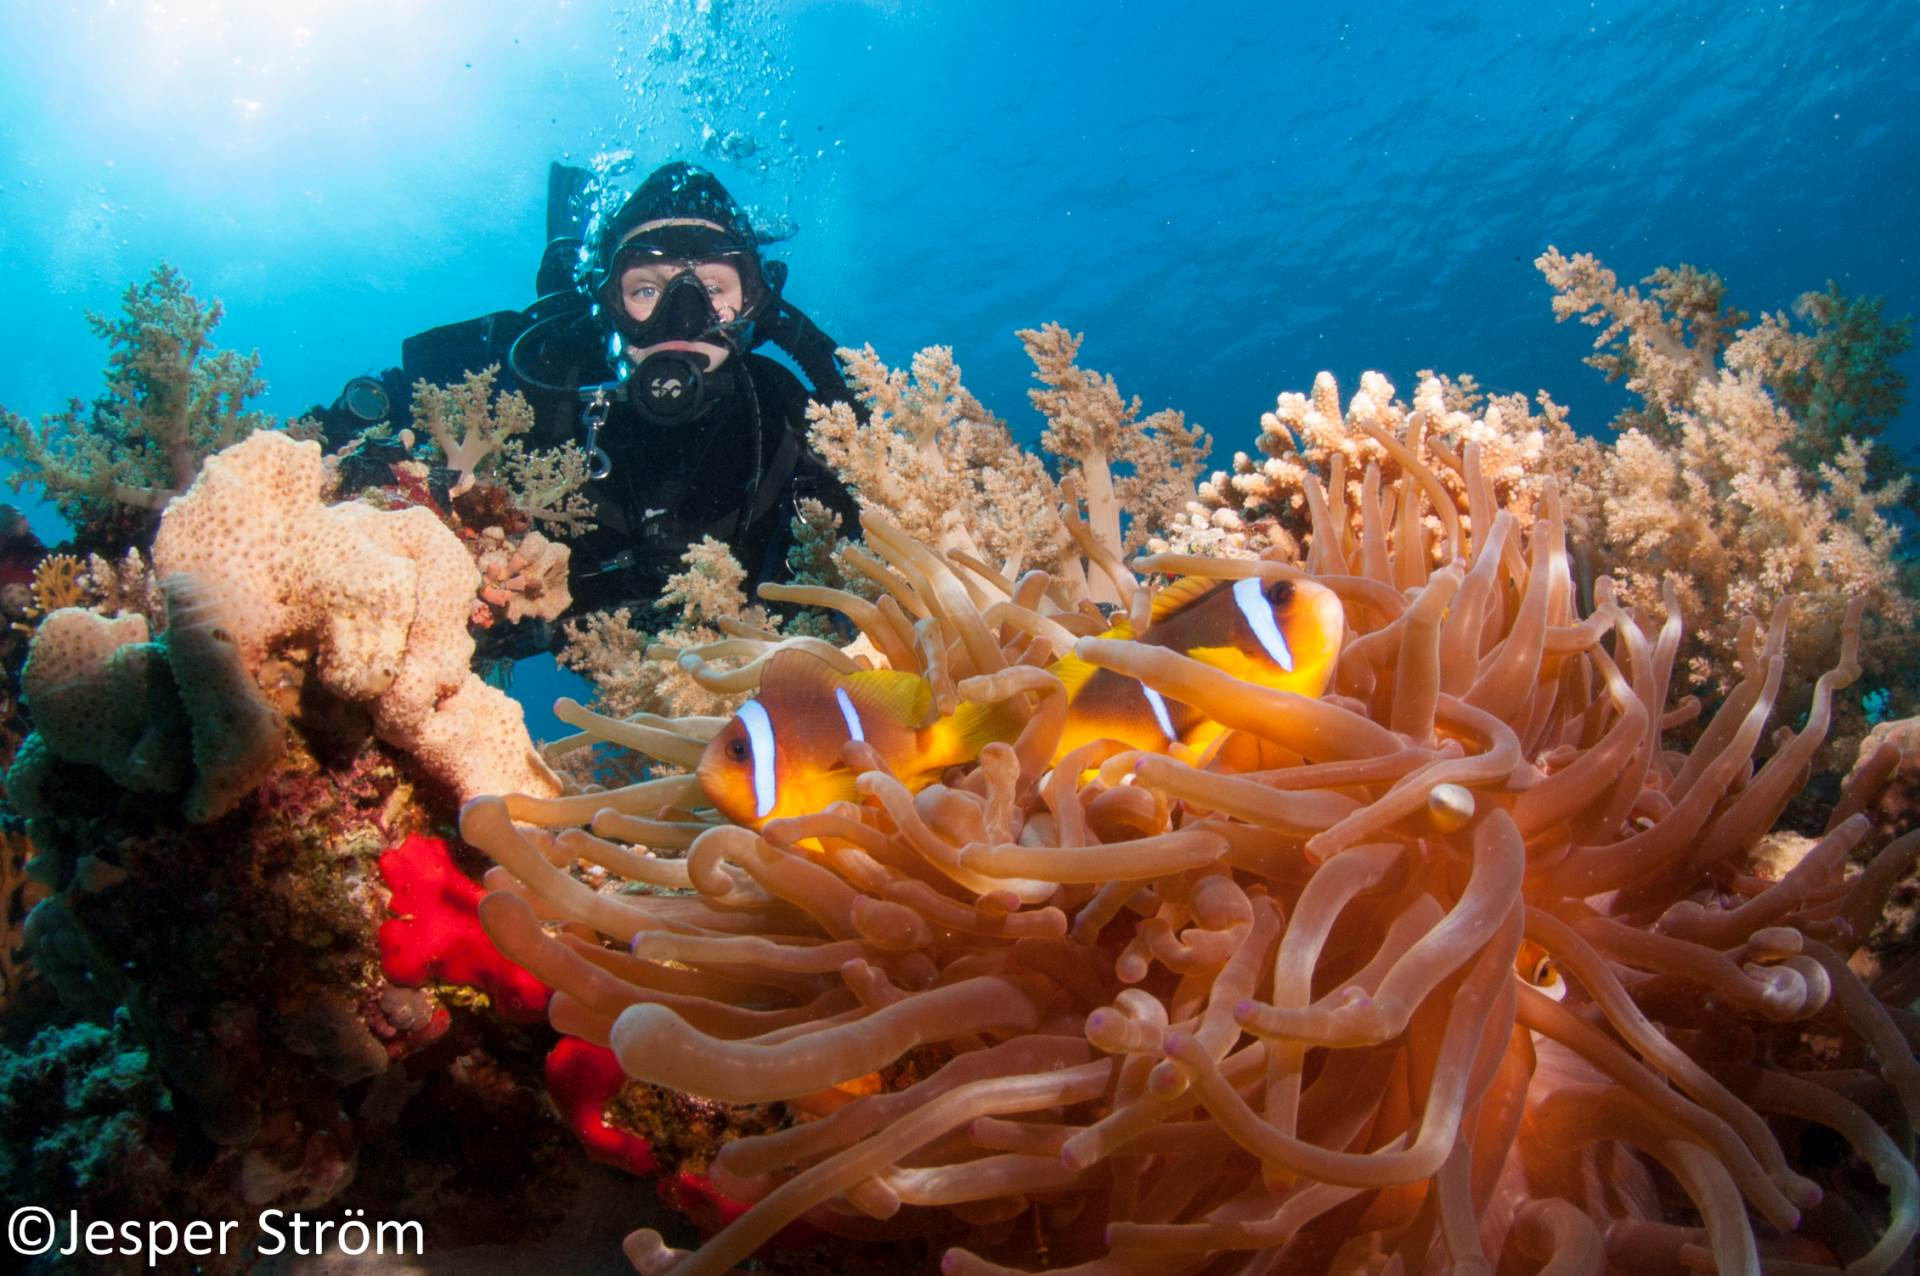 Clear blue waters, happy divers and happy clown fishes... Could it be better?!?